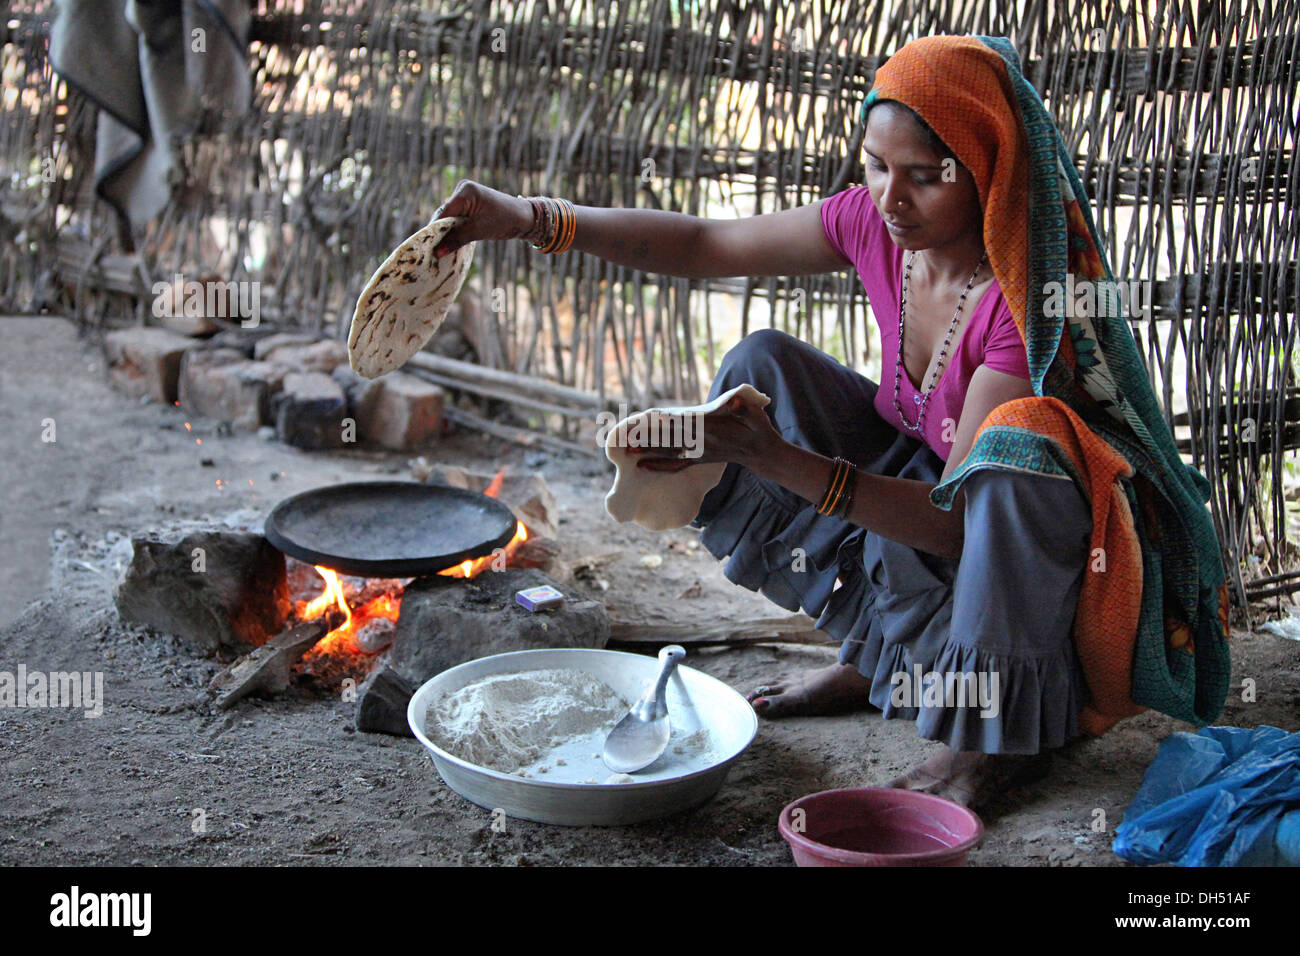 http://c8.alamy.com/comp/DH51AF/tribal-woman-cooking-food-on-hearth-jhabua-madhya-pradesh-india-DH51AF.jpg Indian Woman Cooking